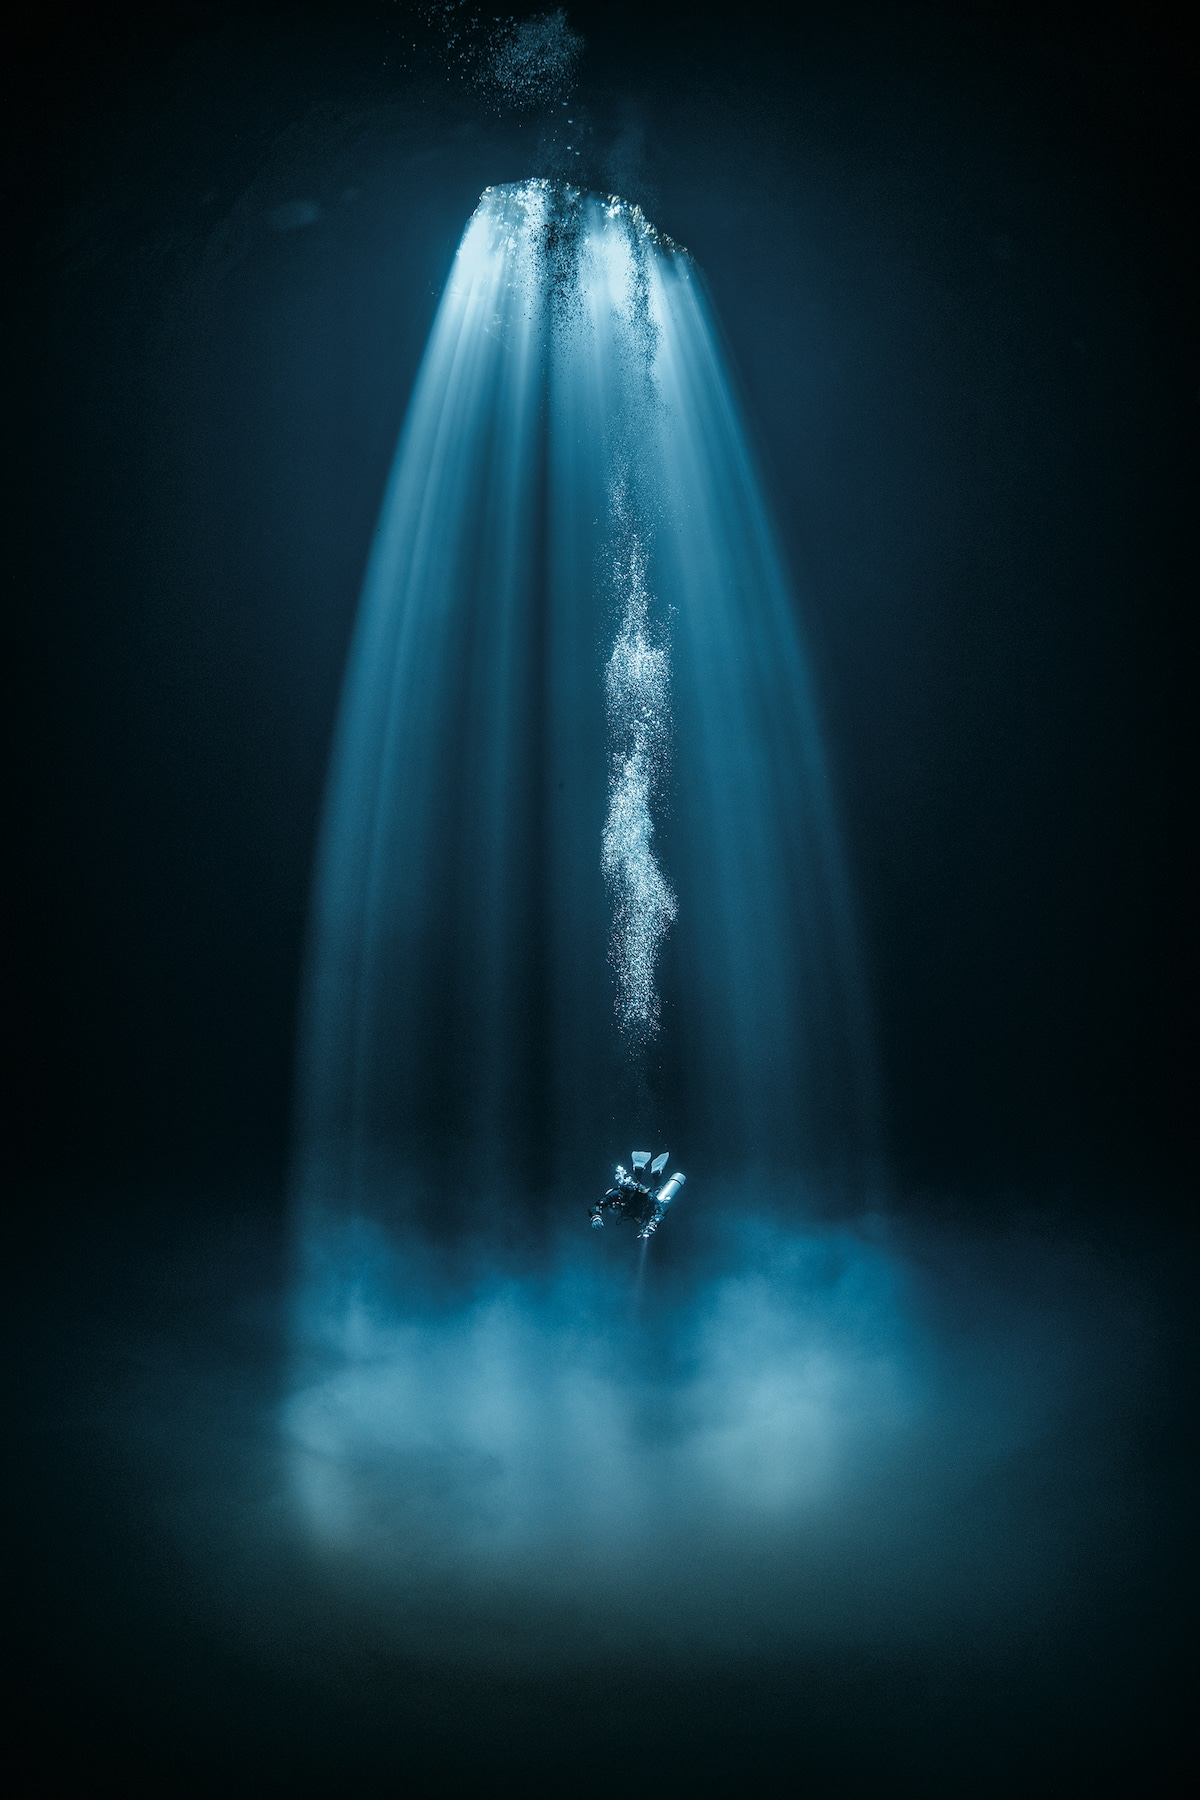 Scuba Diver Underwater Bathed in Light